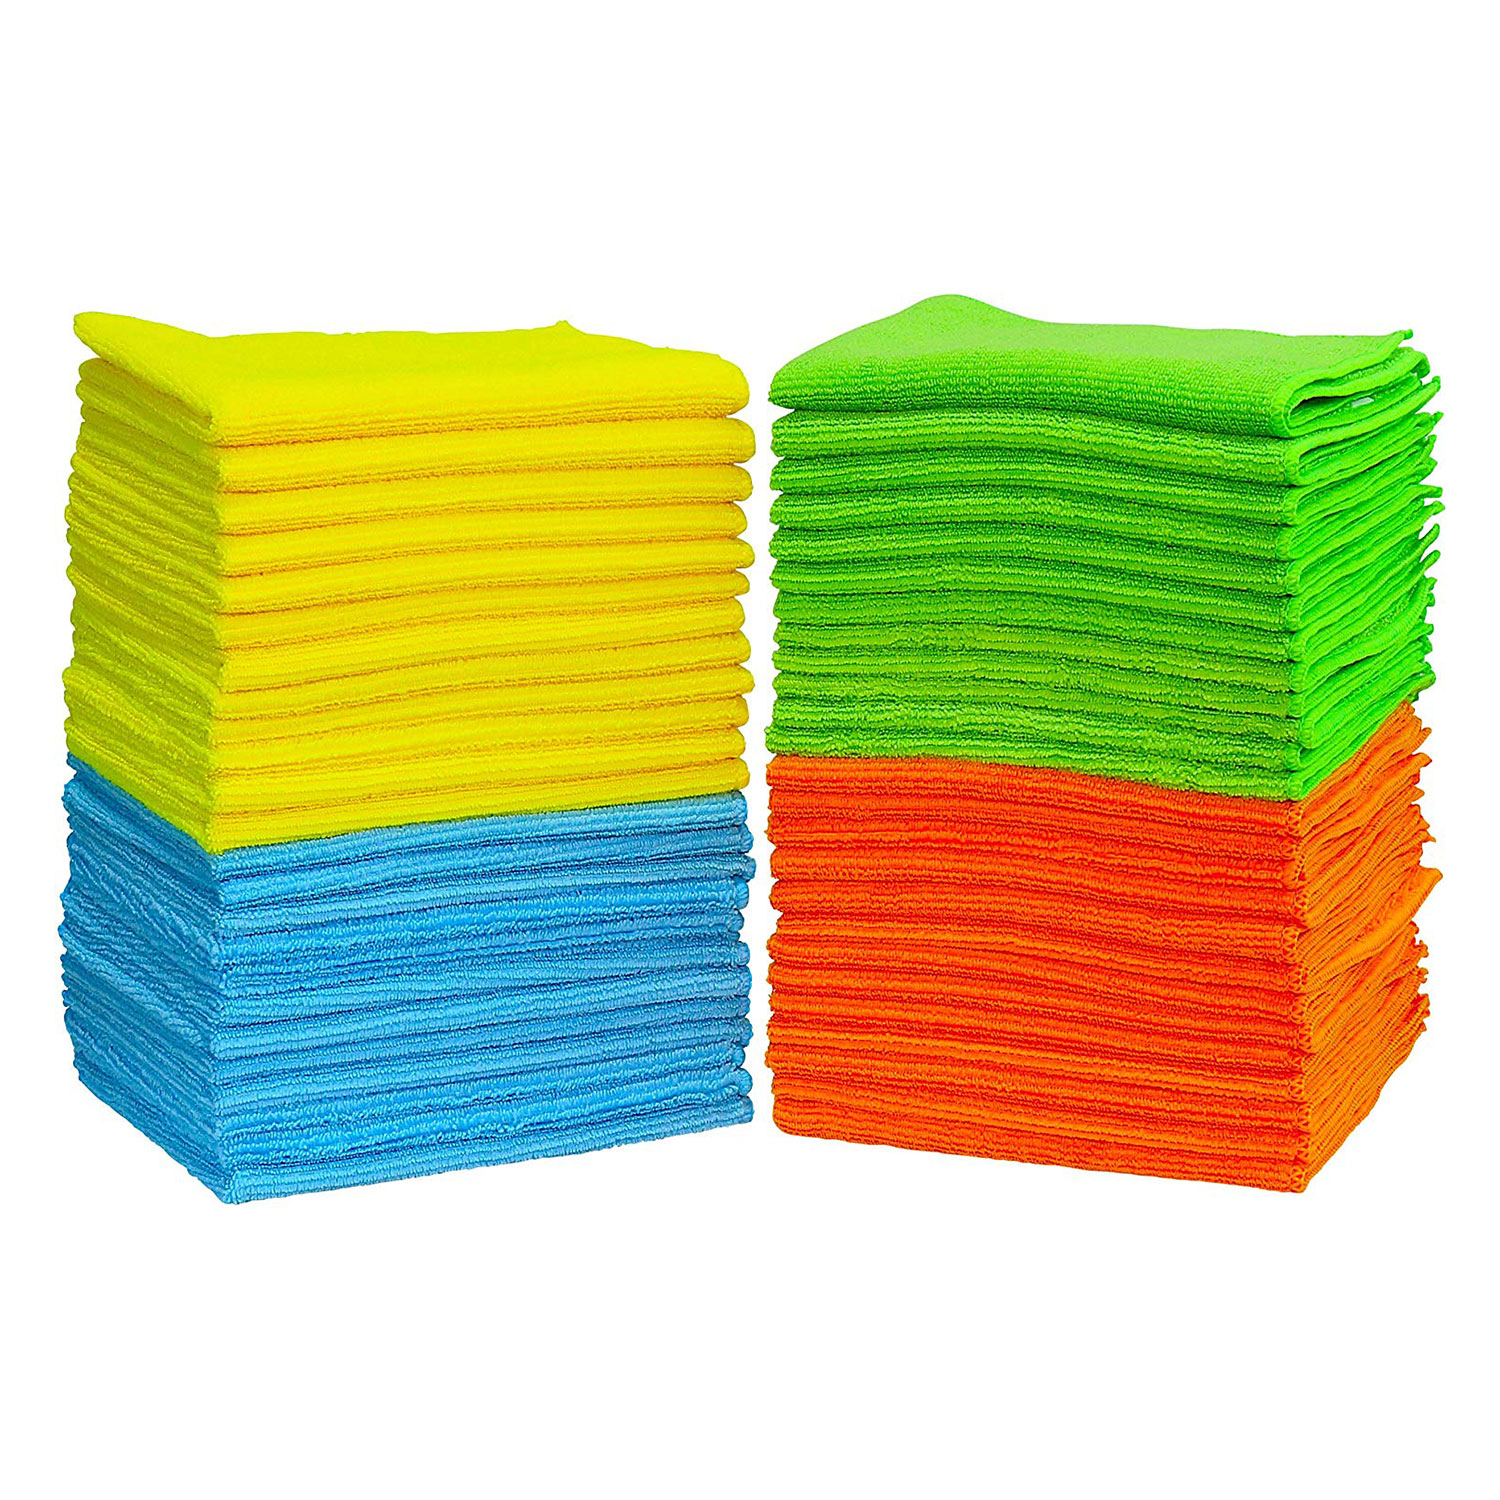 50 Pack SimpleHouseware Microfiber Cleaning Cloth